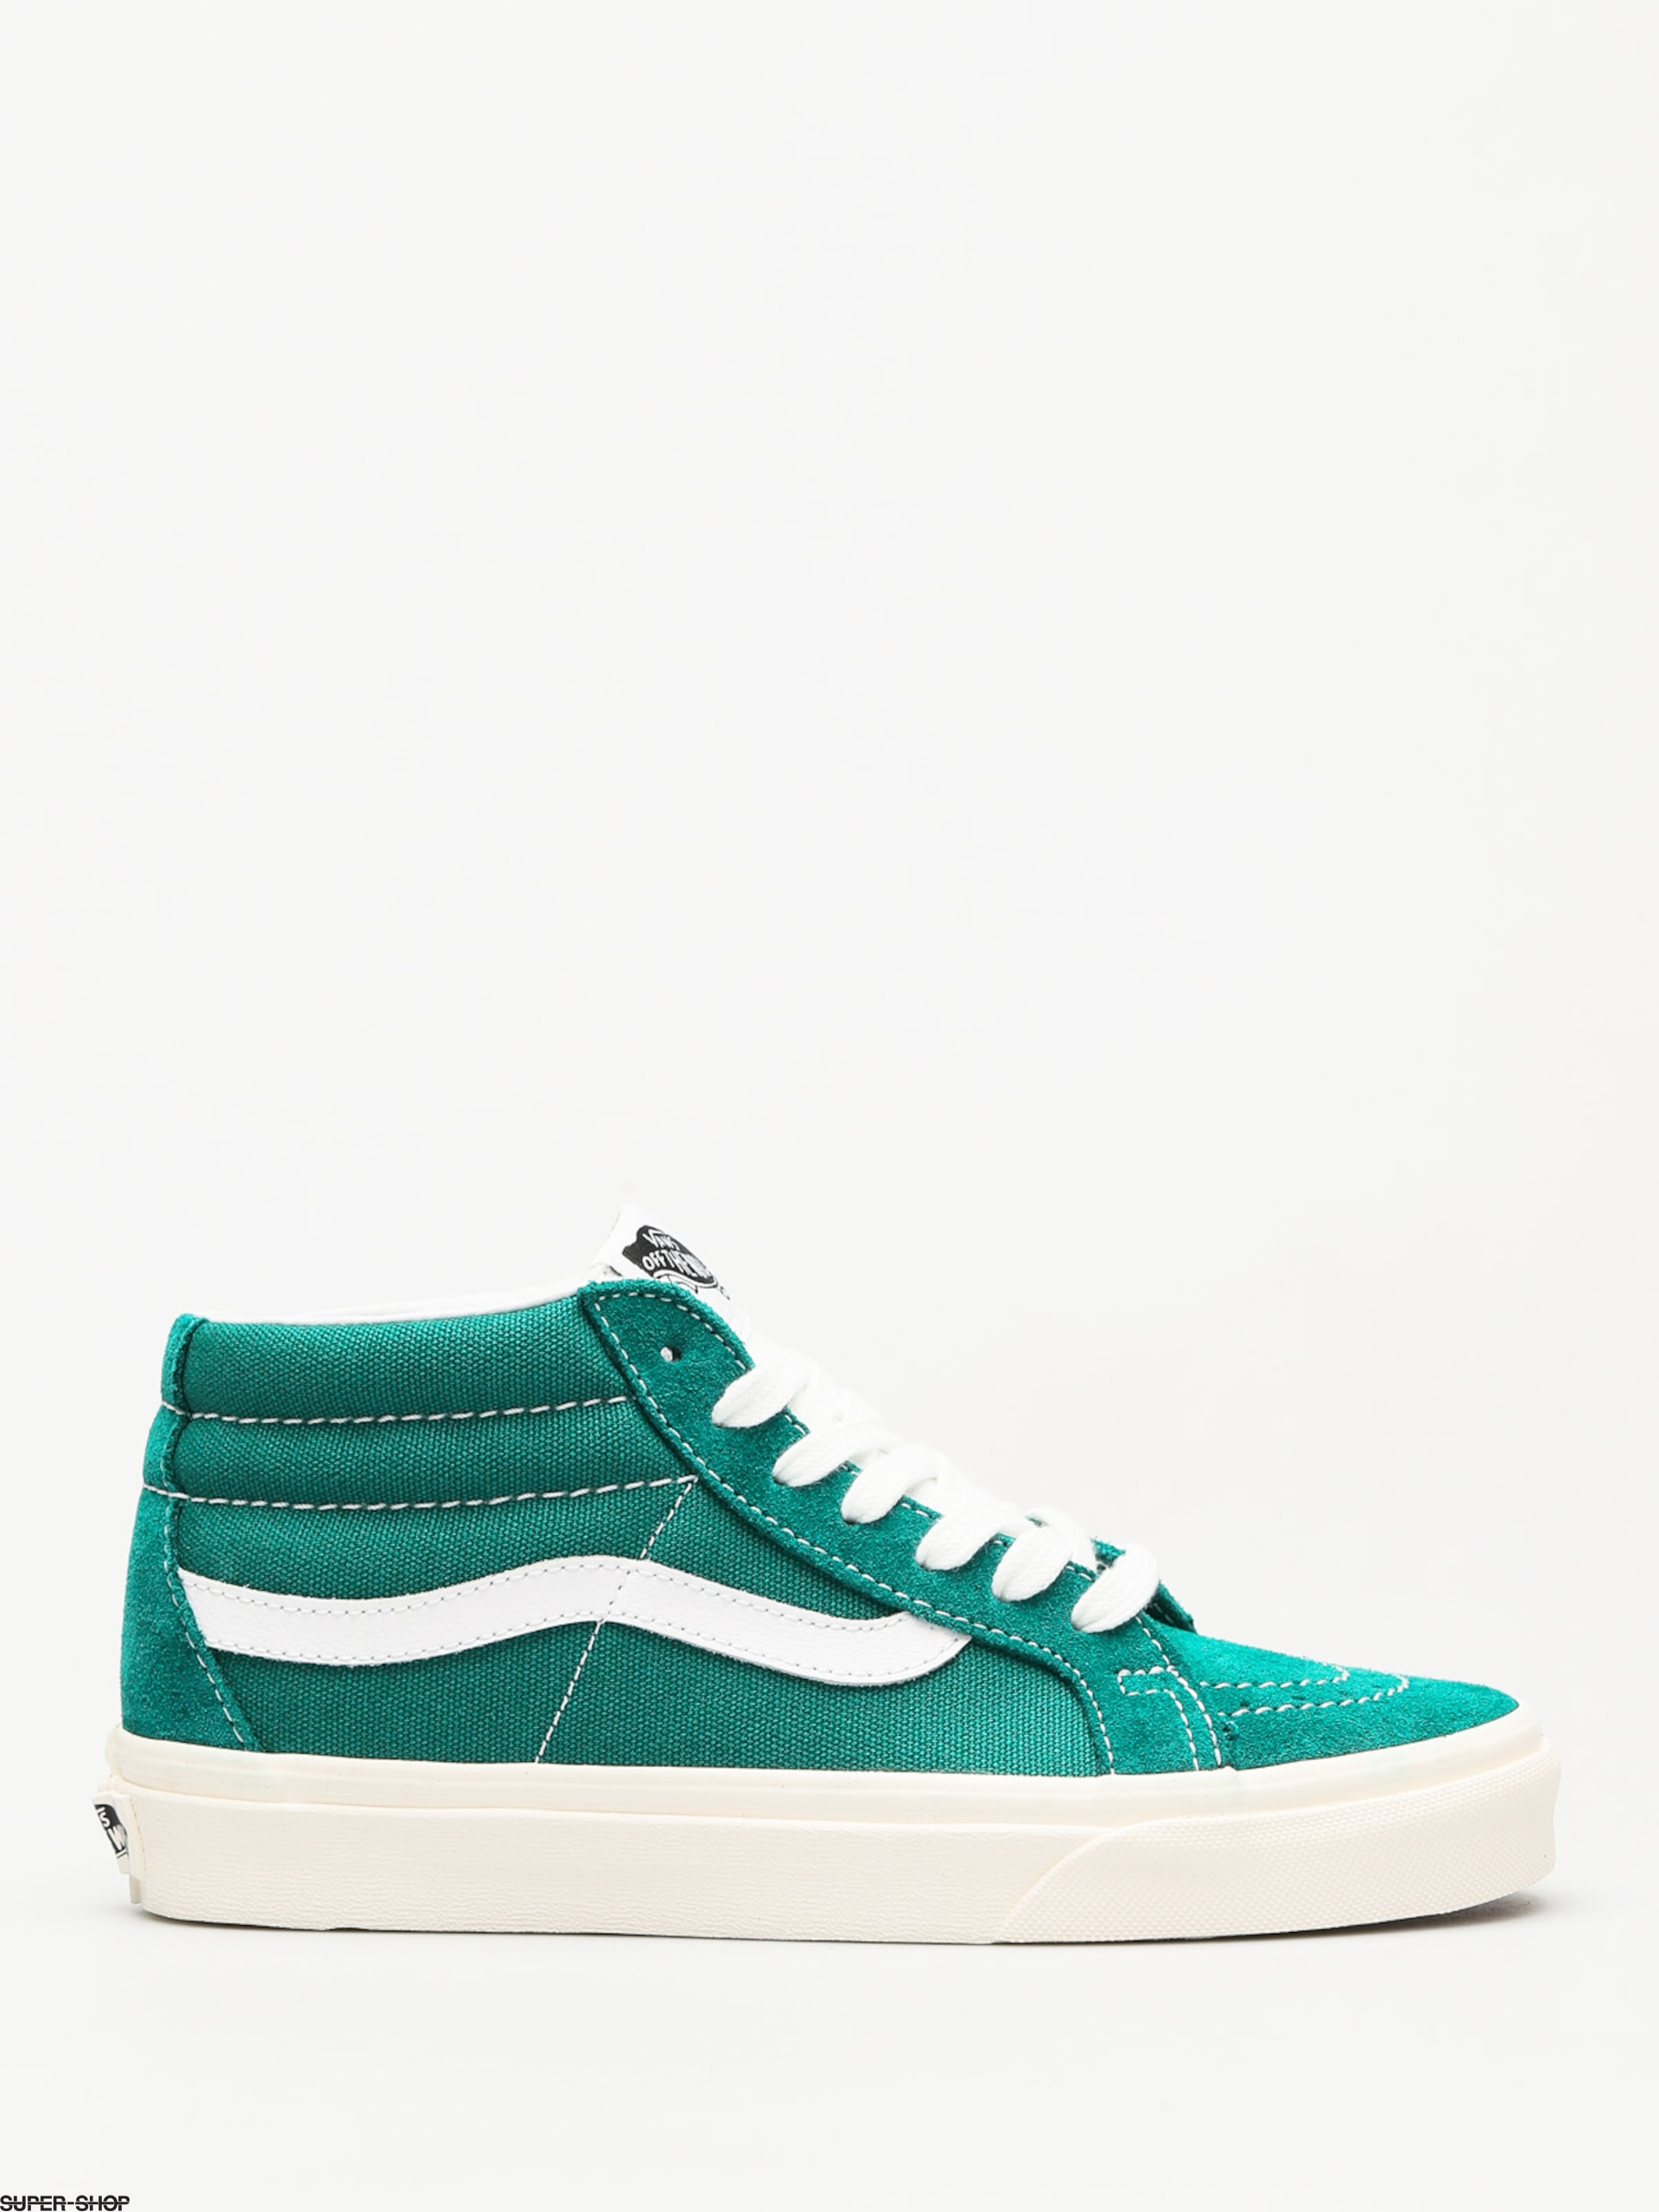 589c0d21896e58 949107-w1920-vans-shoes-sk8-mid-reissue-cadmium-green.jpg